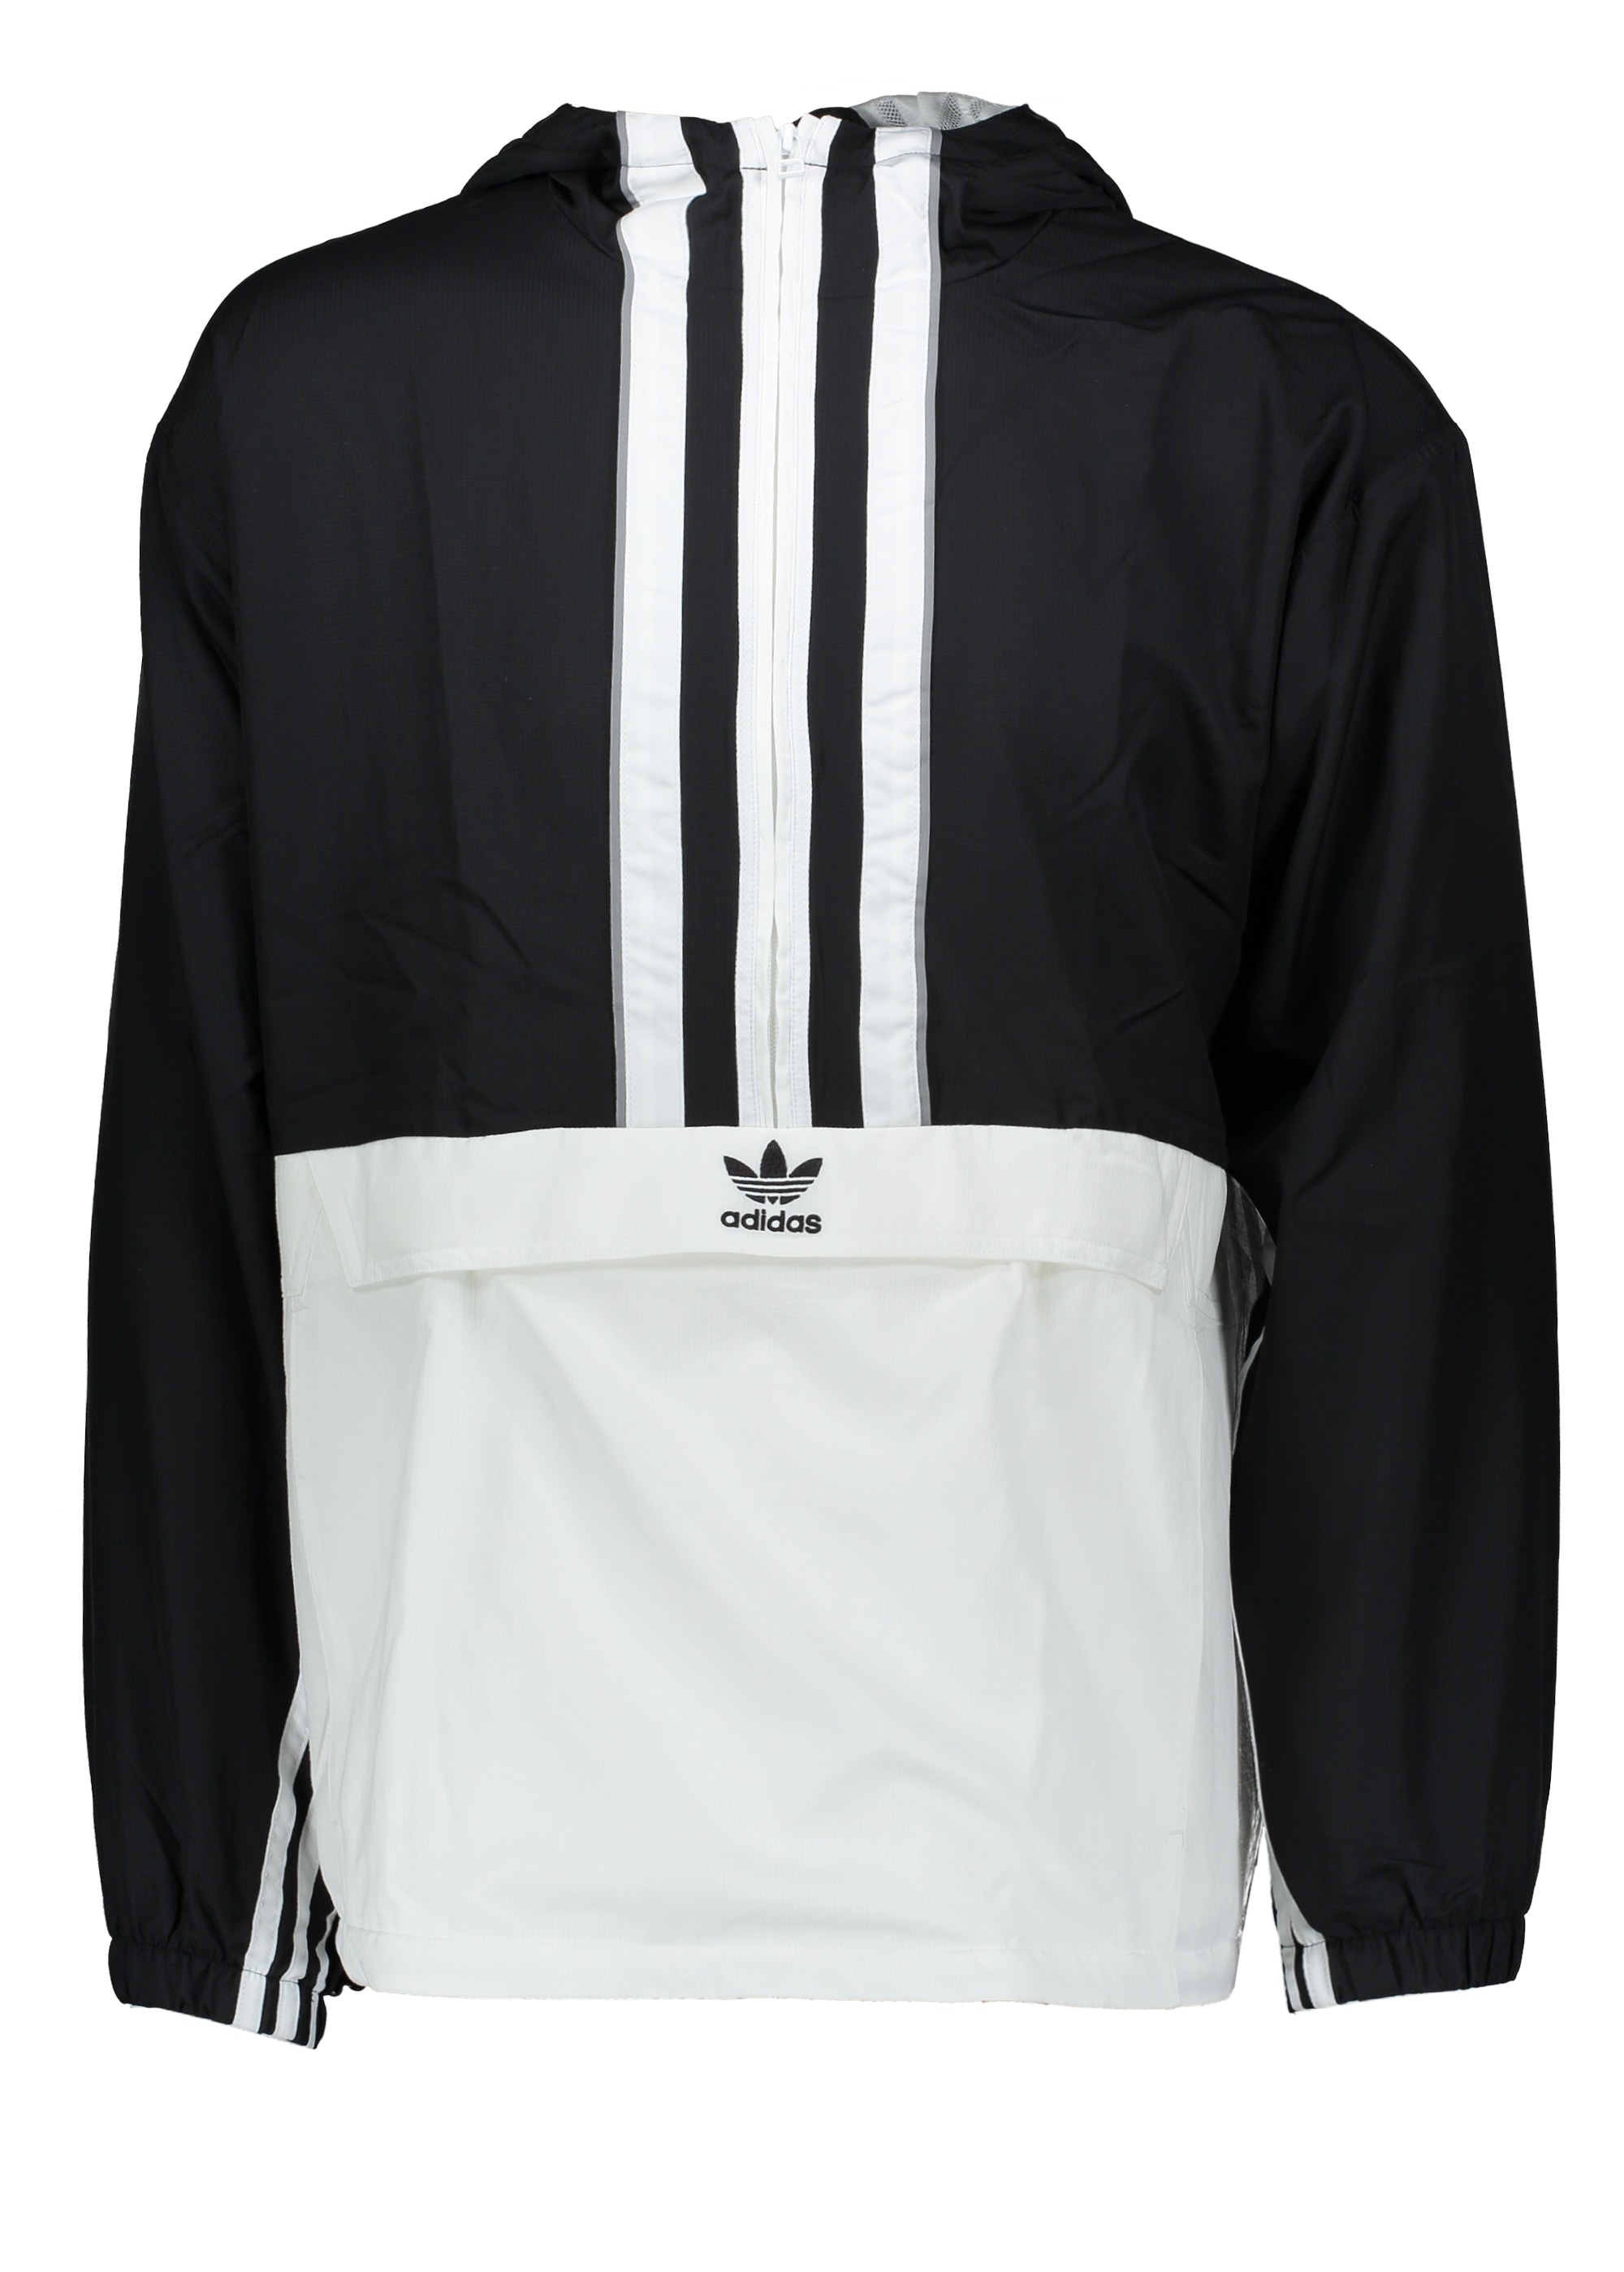 adidas Originals Apparel Authentic Anorak Black White